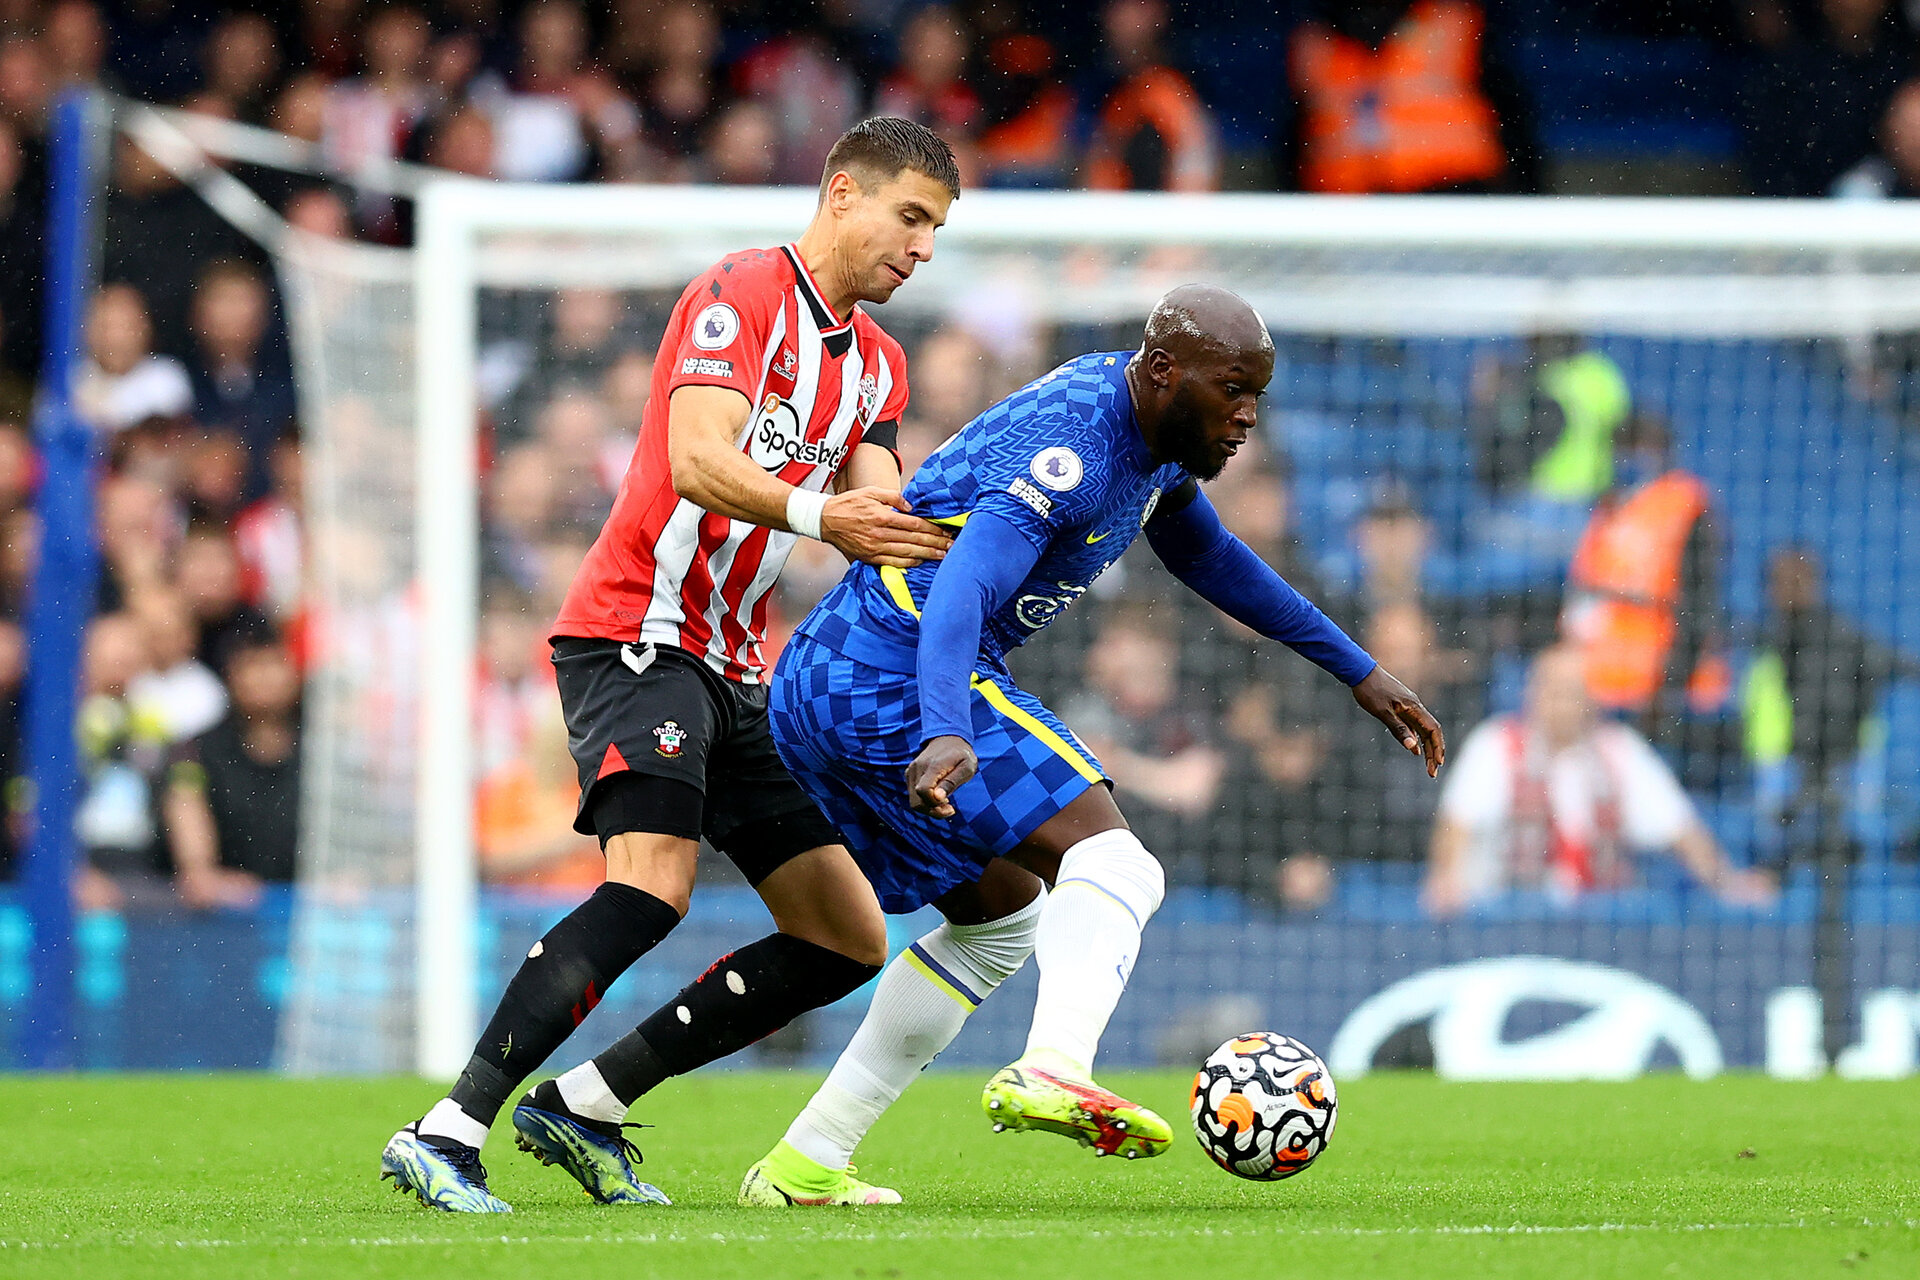 LONDON, ENGLAND - OCTOBER 02:  during the Premier League match between Chelsea and Southampton at Stamford Bridge on October 02, 2021 in London, England. (Photo by Matt Watson/Southampton FC via Getty Images)